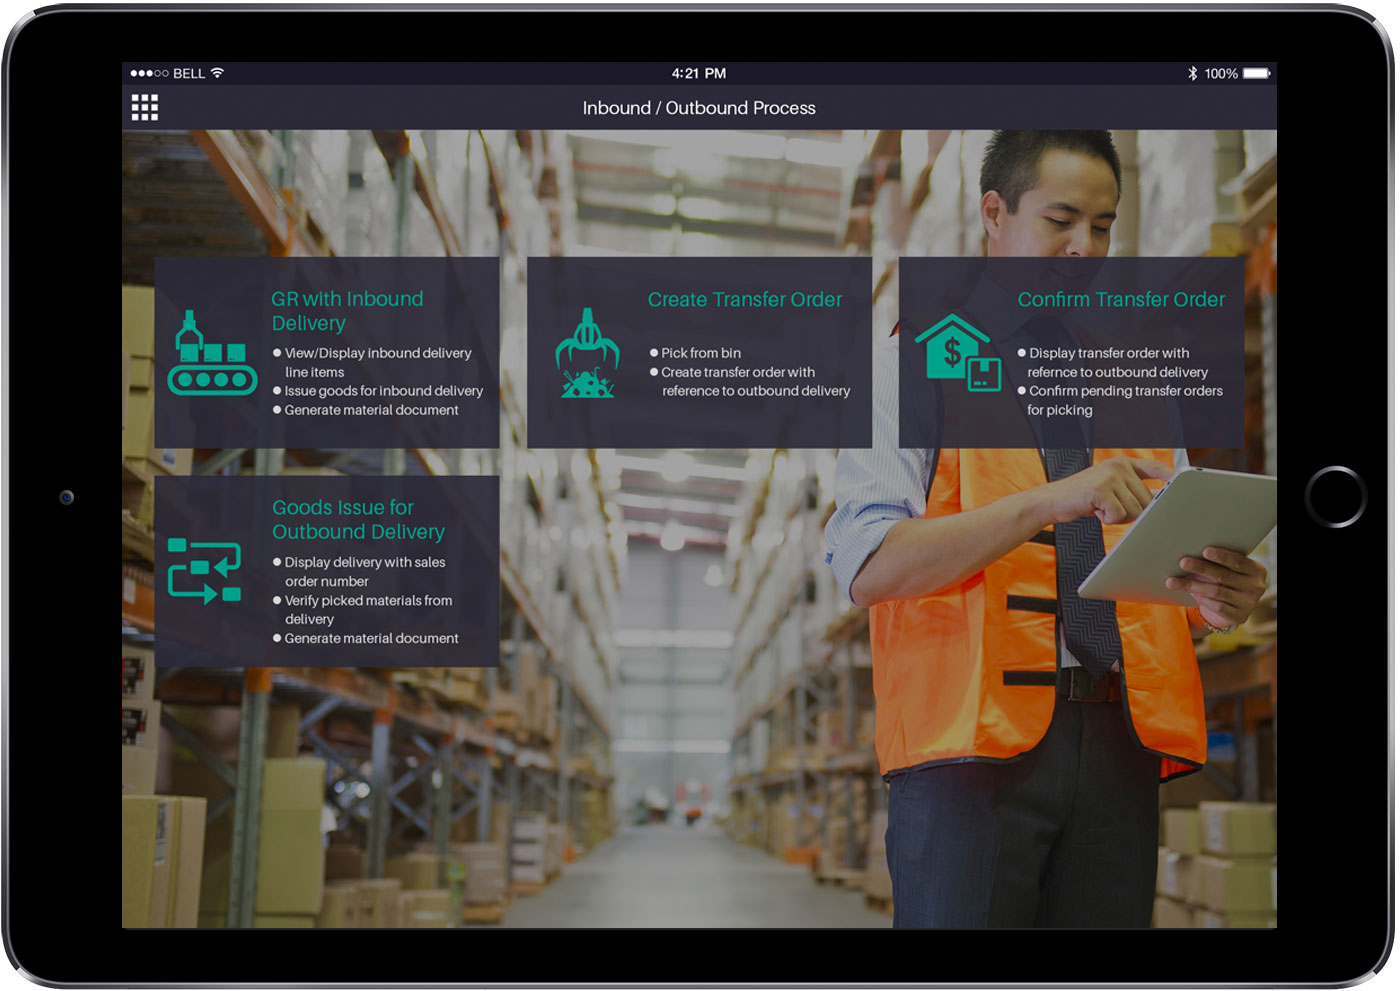 SAP Inventory Management App - Inbound / Outbound Process